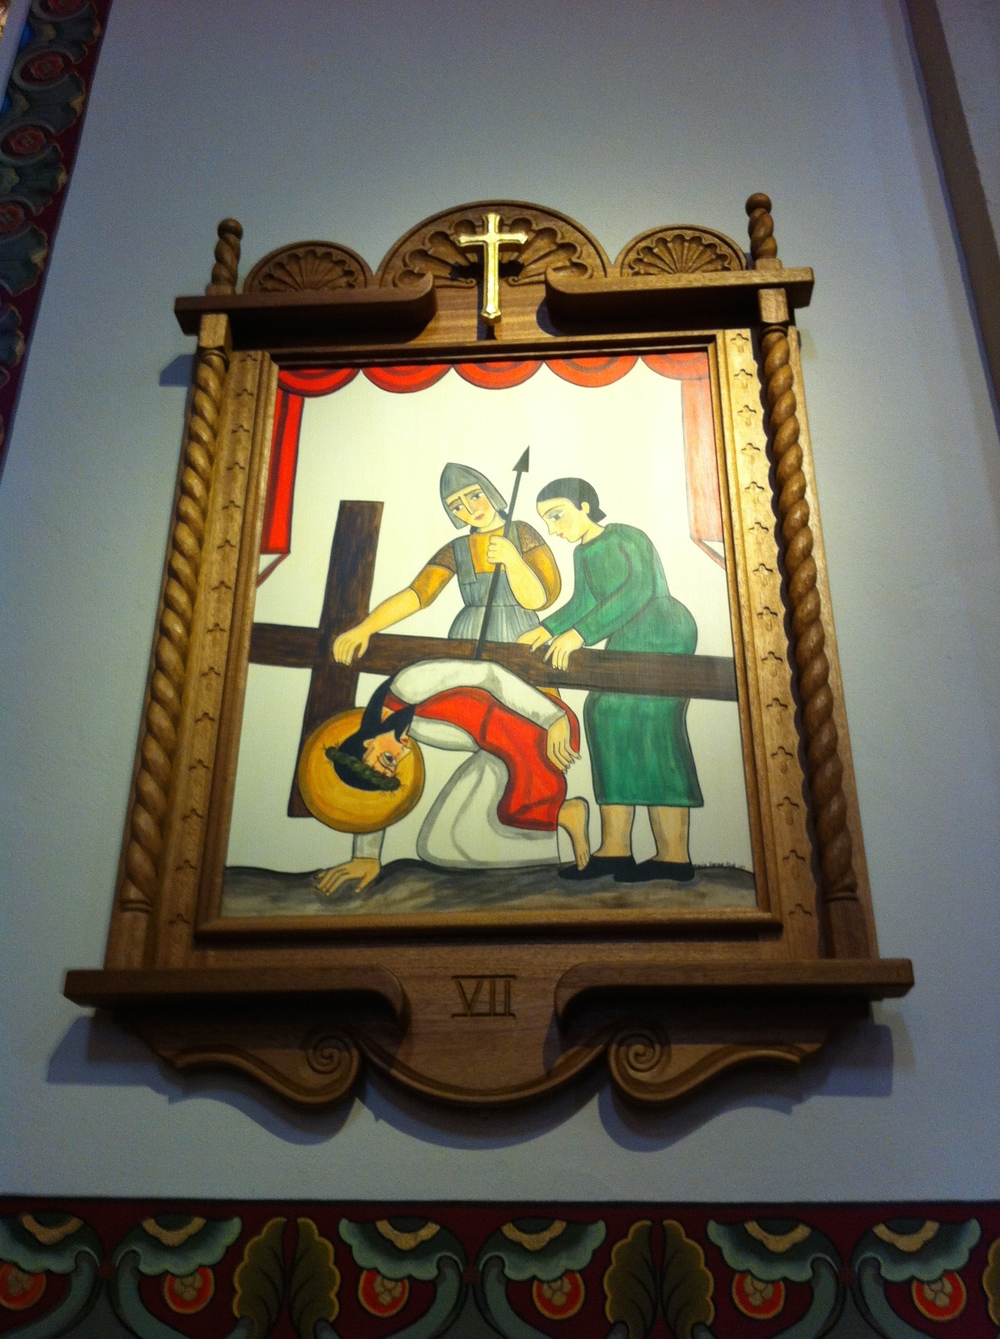 More links between folk art and religious art at the cathedral.